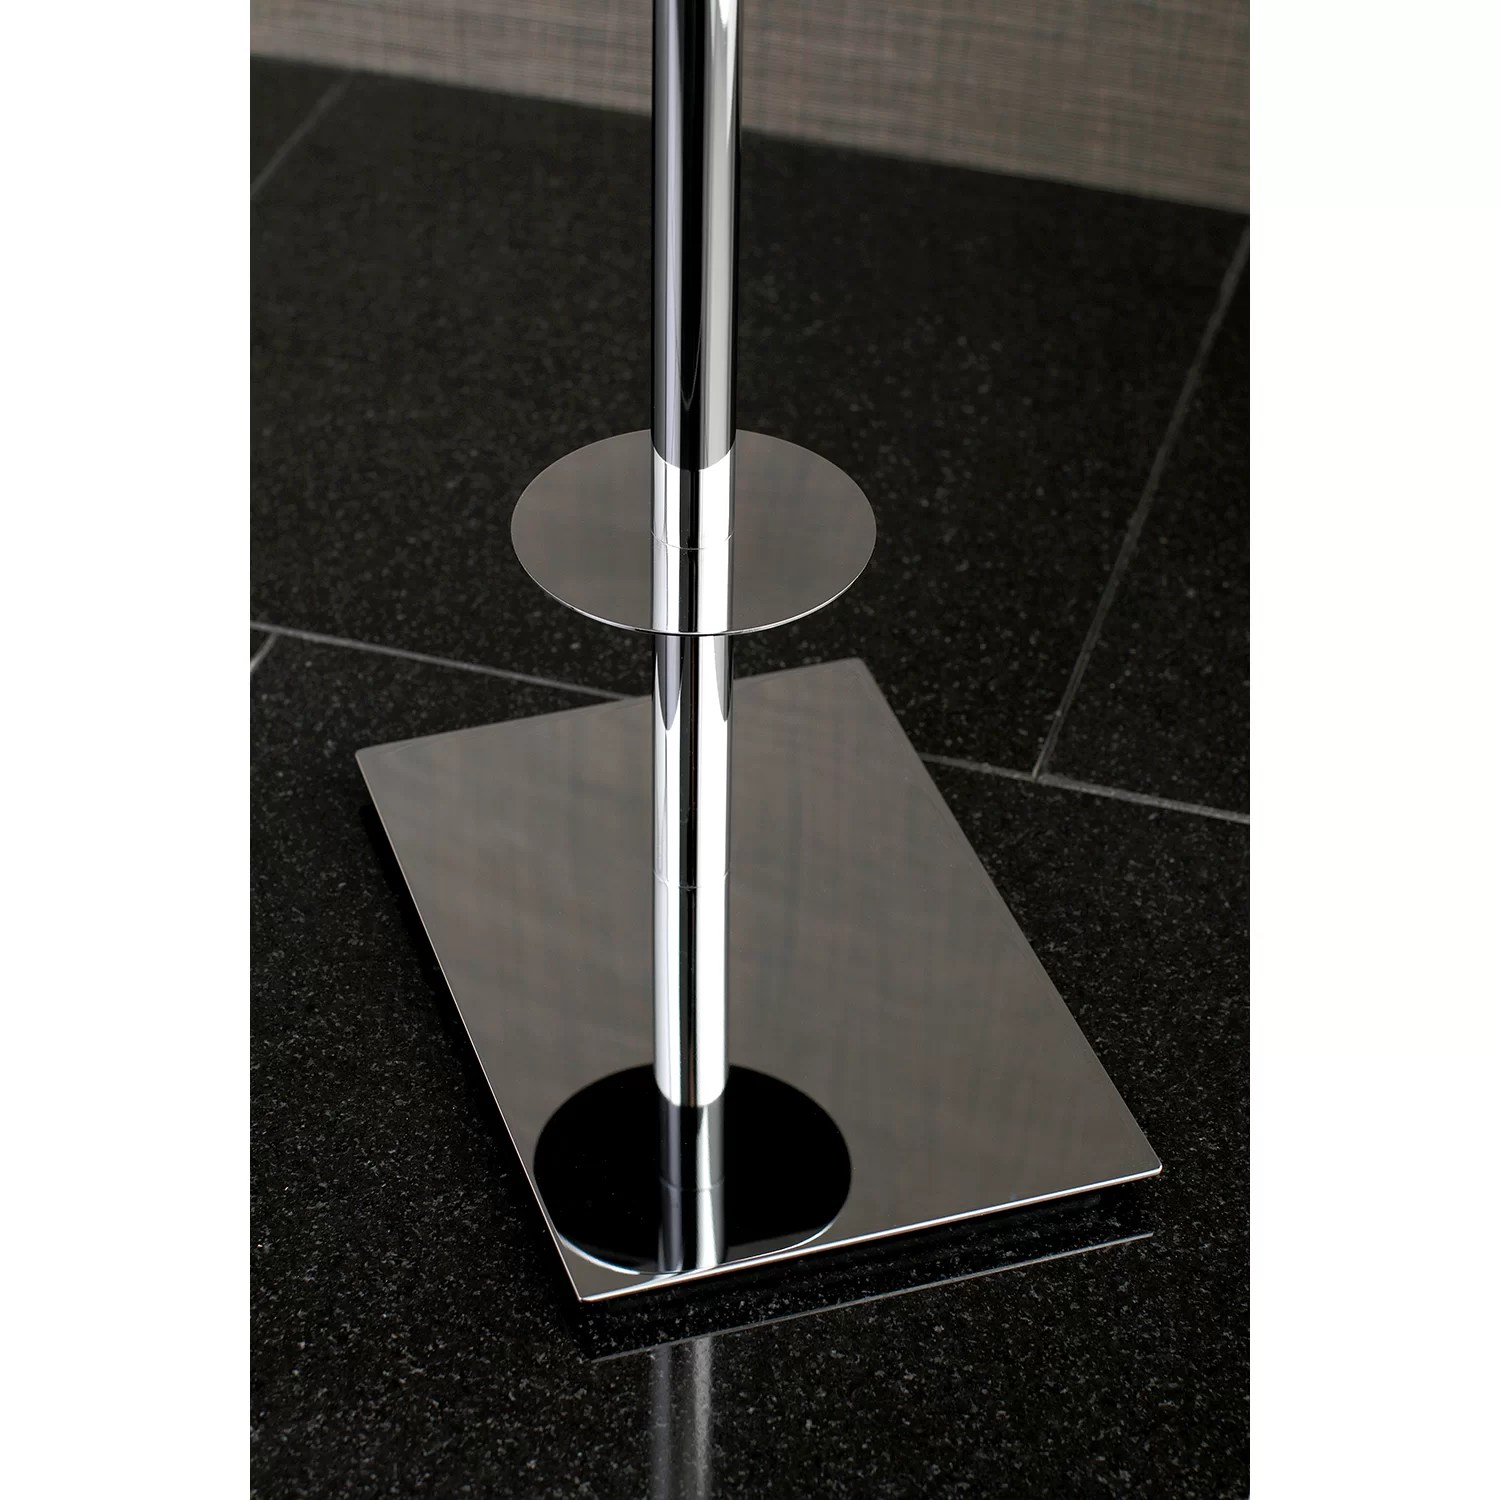 Free Standing Toilet Paper Holder Kingston Brass Claremont Freestanding Toilet Paper Holder